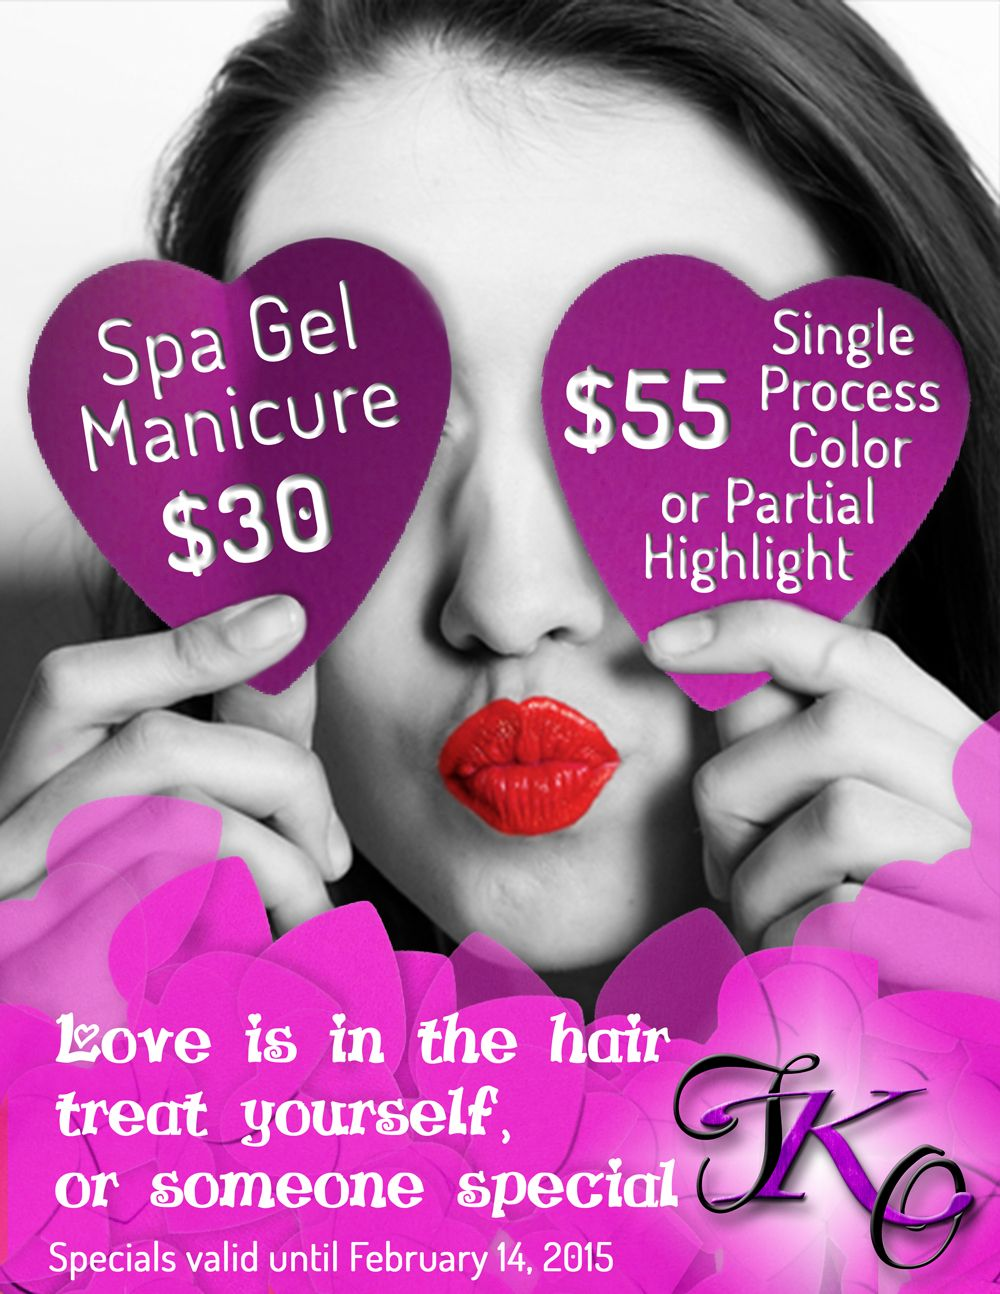 Valentine's Day specials at Total Knockout Salon! Call to